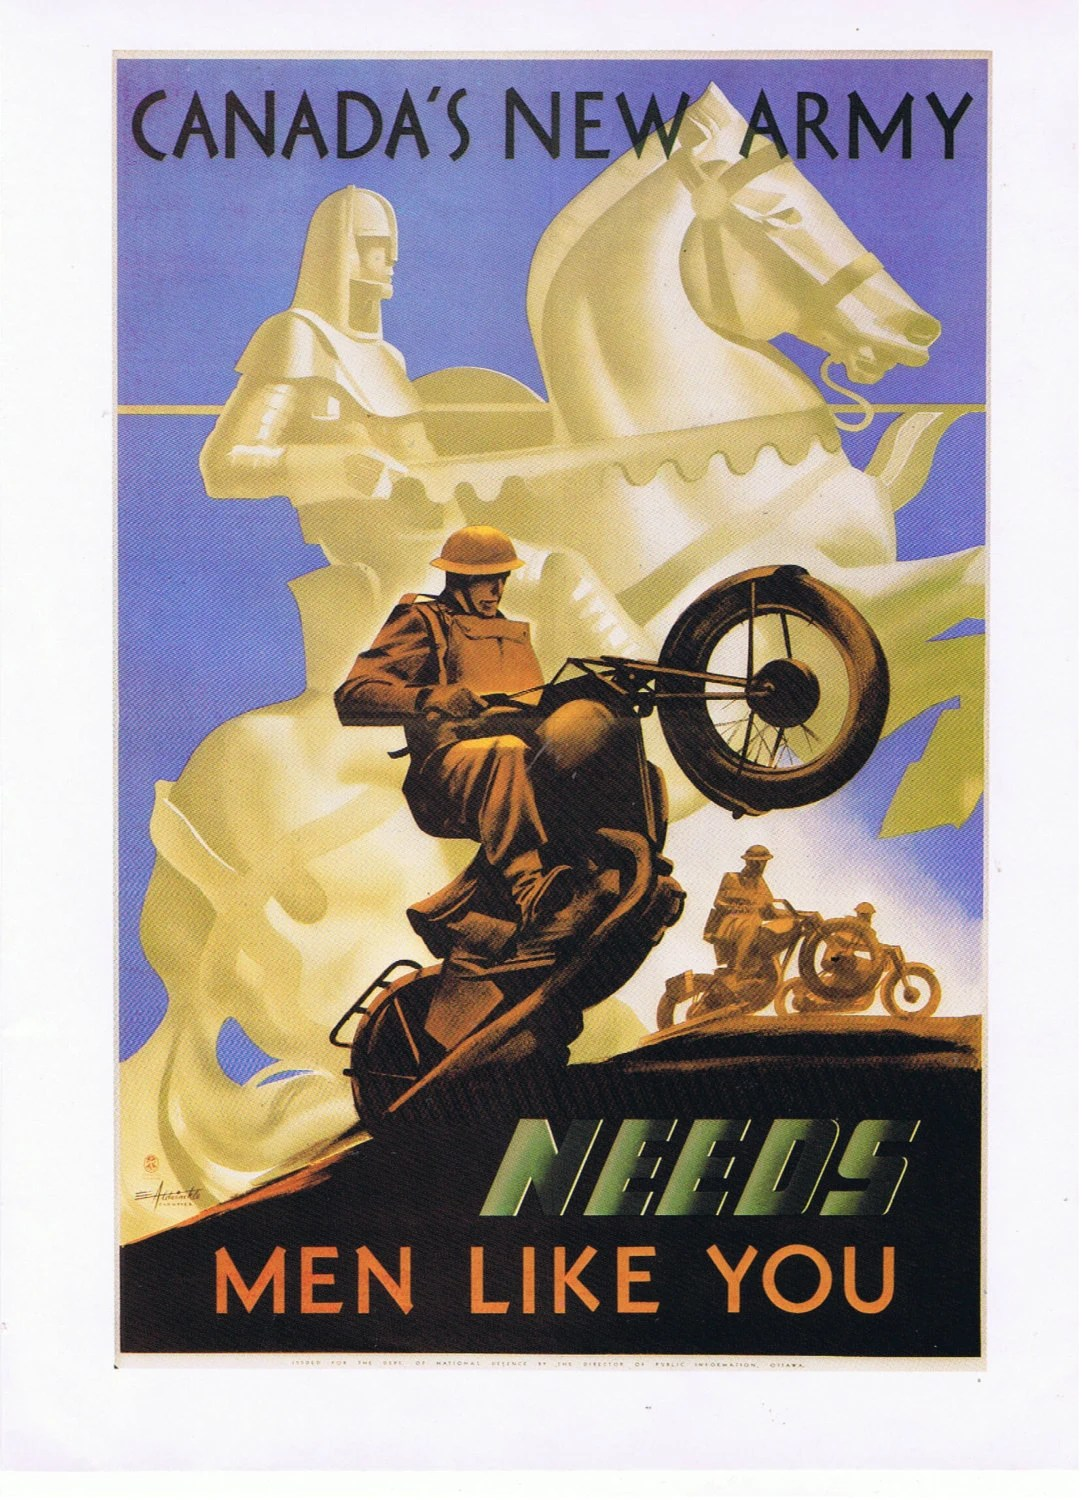 1941 Canadas New Army Needs Men Like You Military